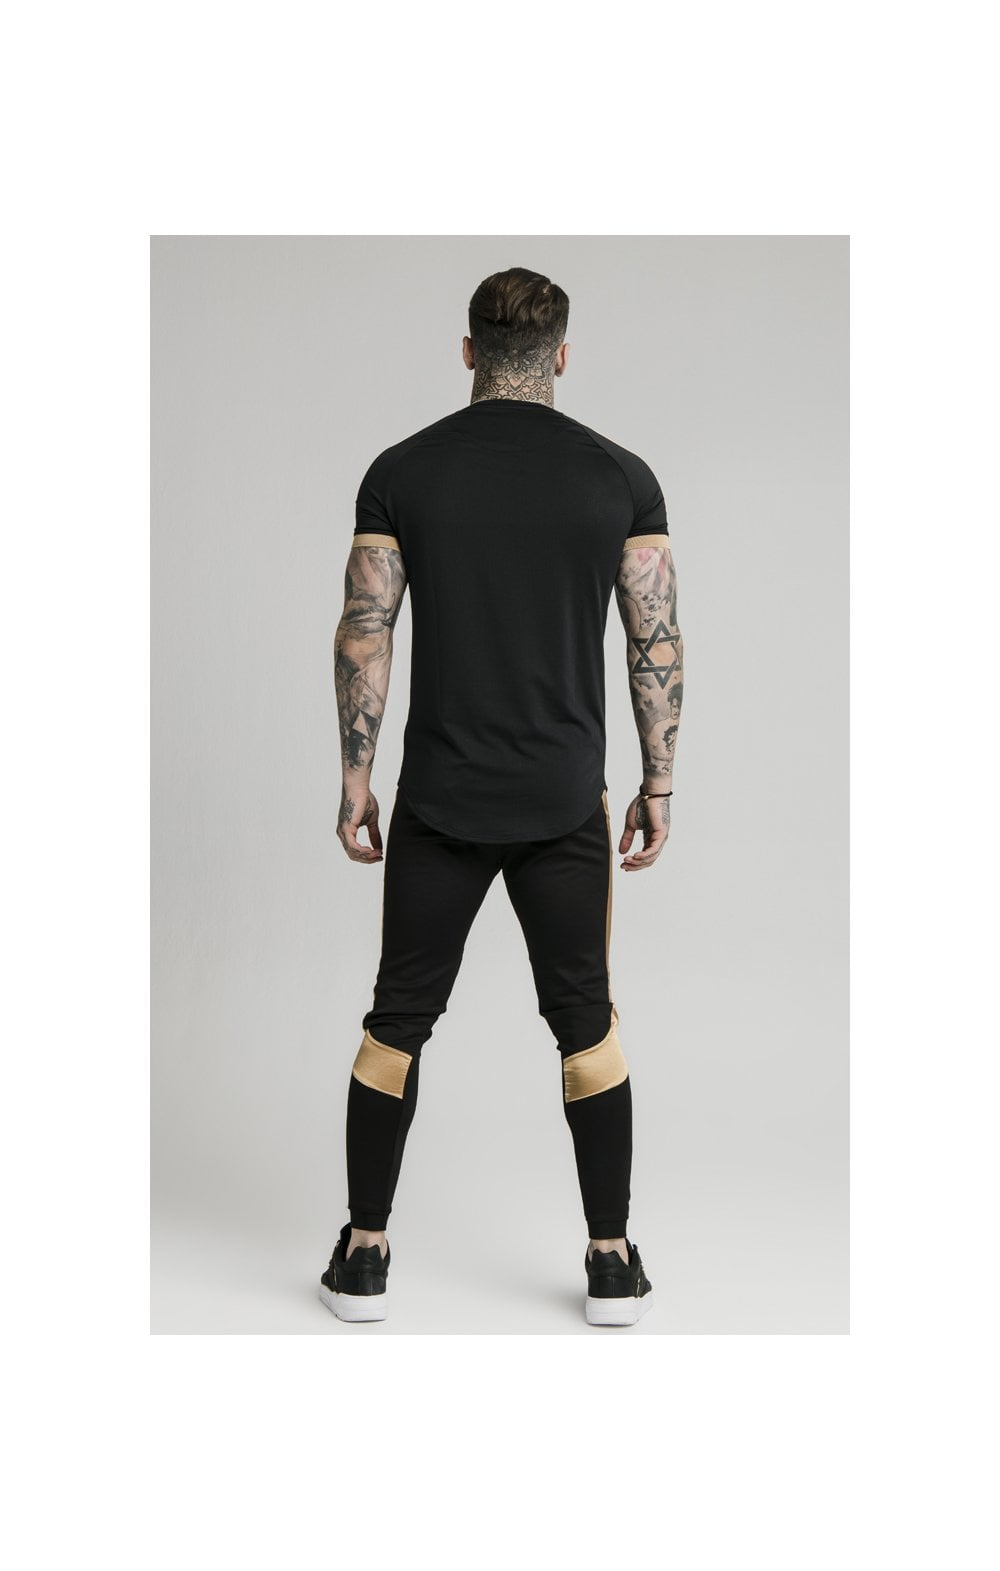 Load image into Gallery viewer, SikSilk S/S Inset Cuff Tech Tee – Black & Gold (5)